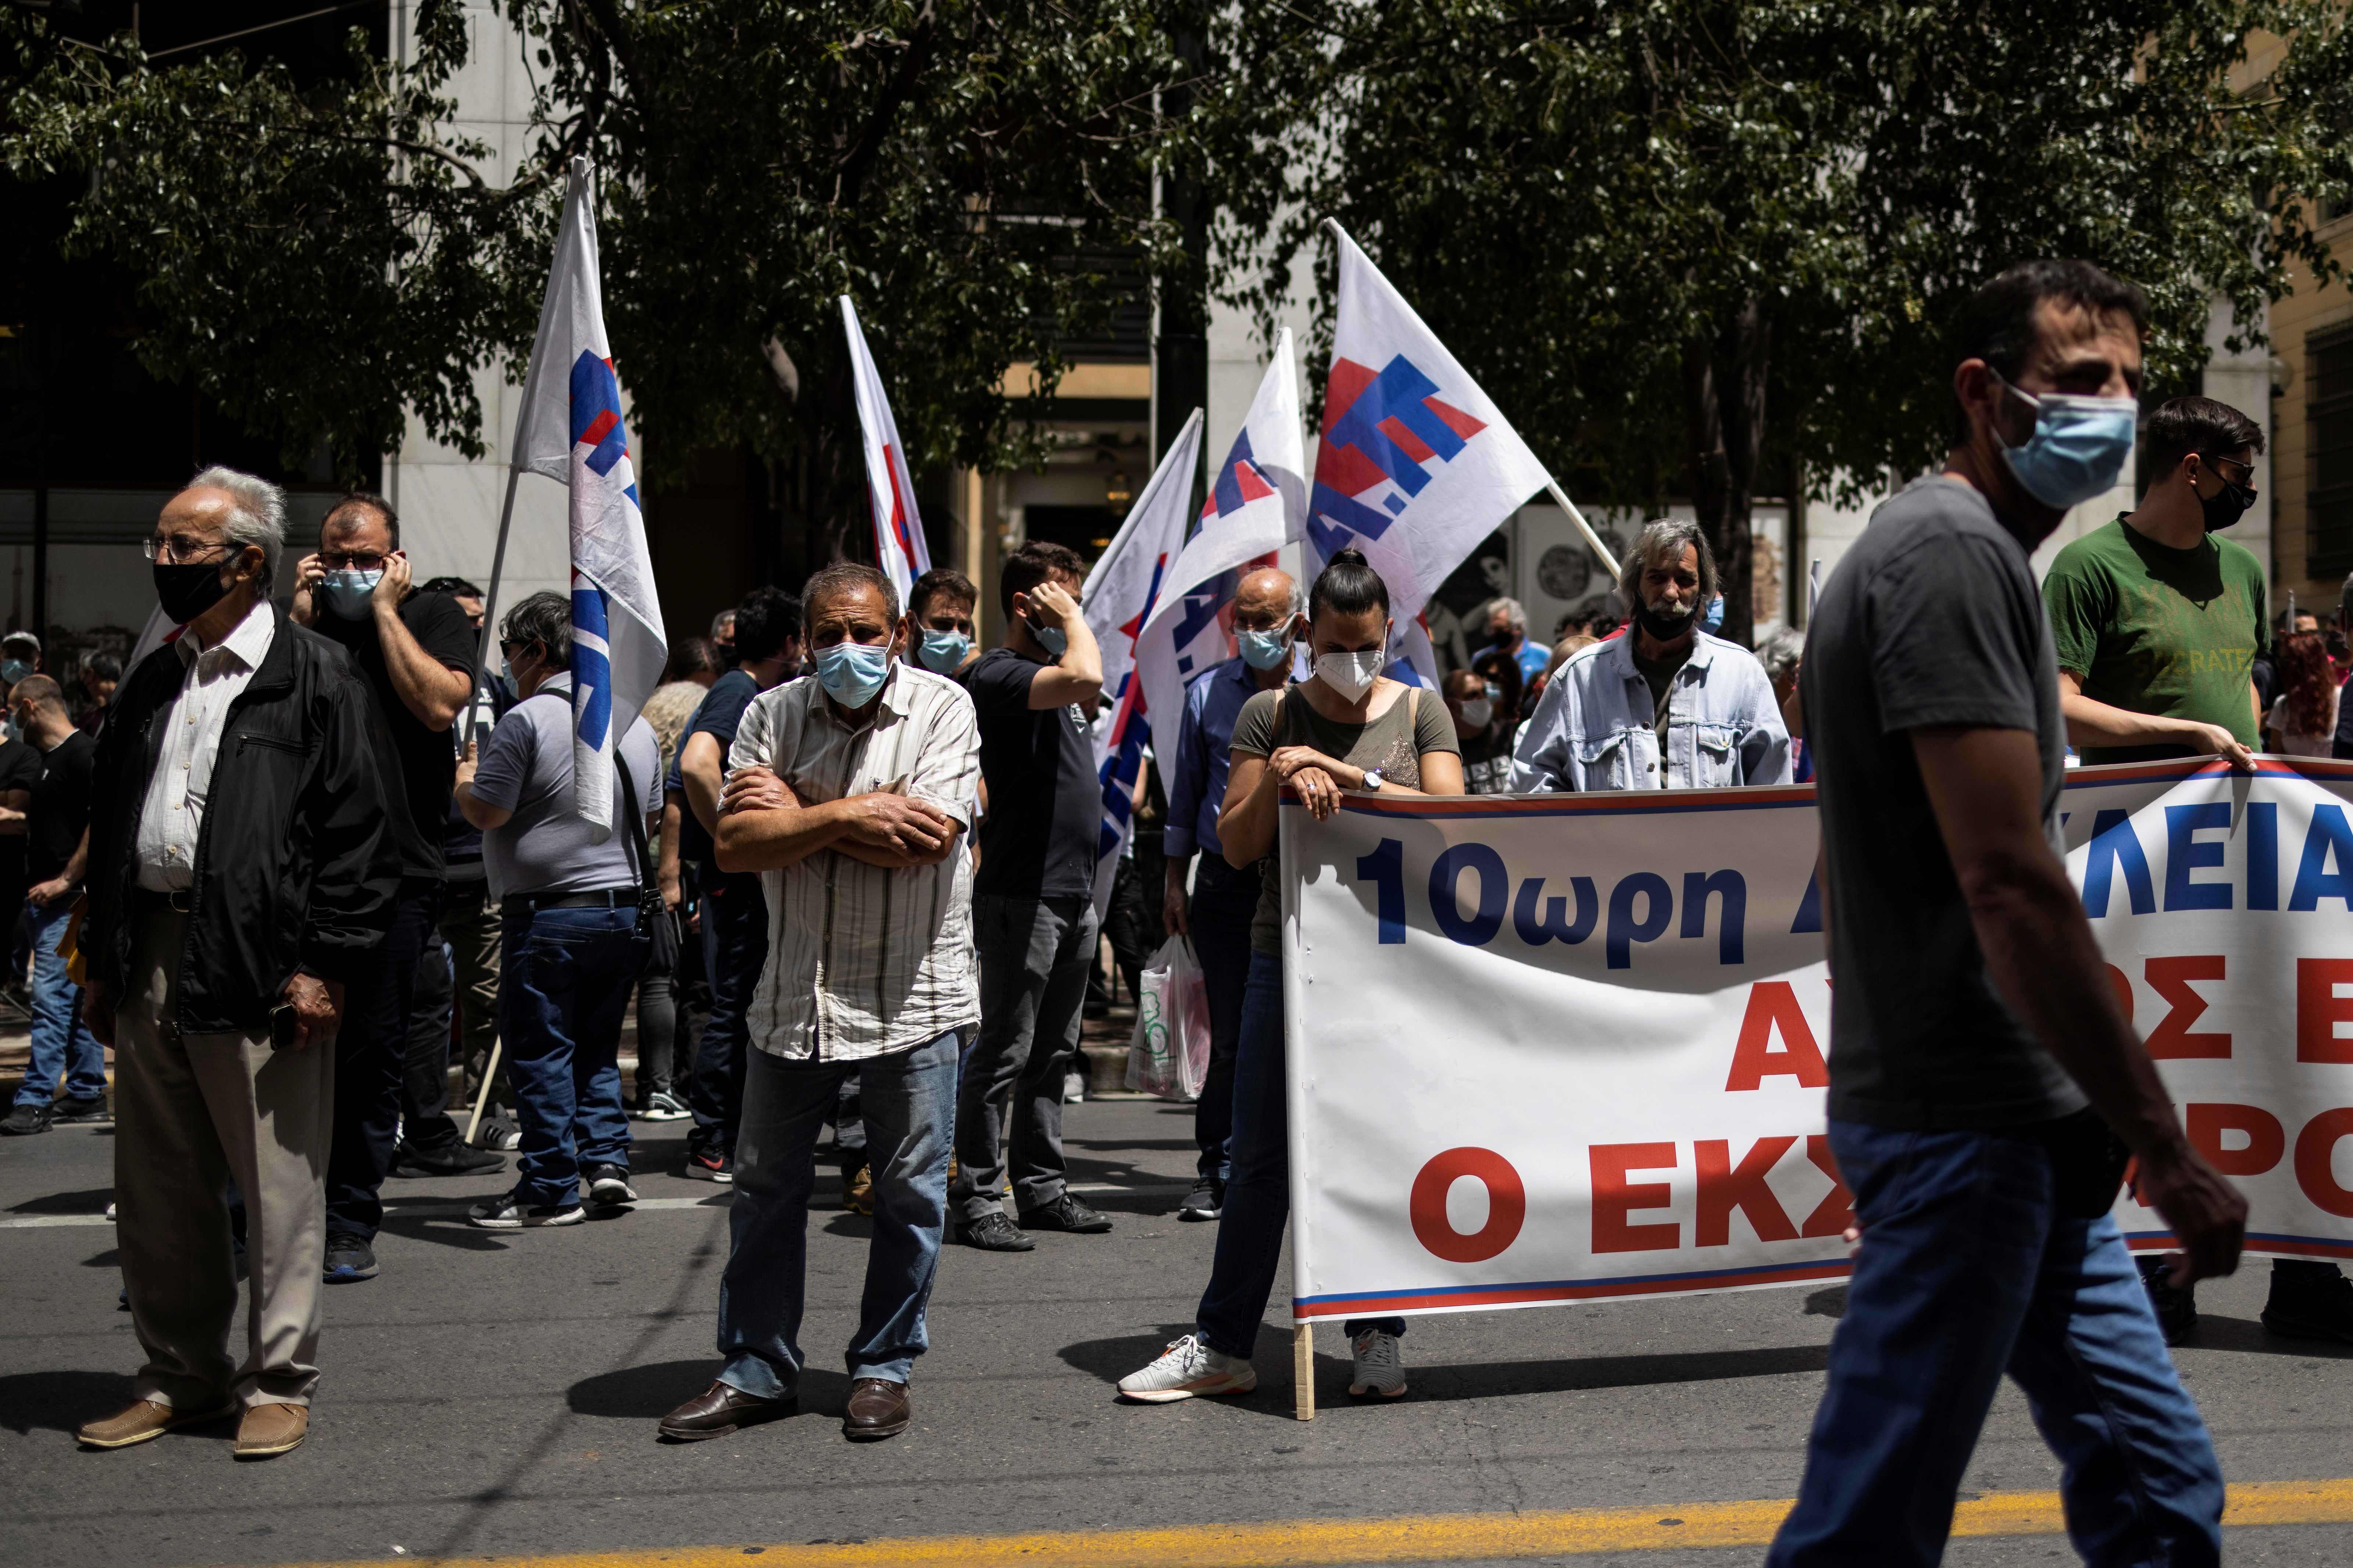 Members of the communist-affiliated trade union PAME demonstrate outside the Labour Ministry against a planned labour bill in Athens, Greece, May 12, 2021. REUTERS/Alkis Konstantinidis